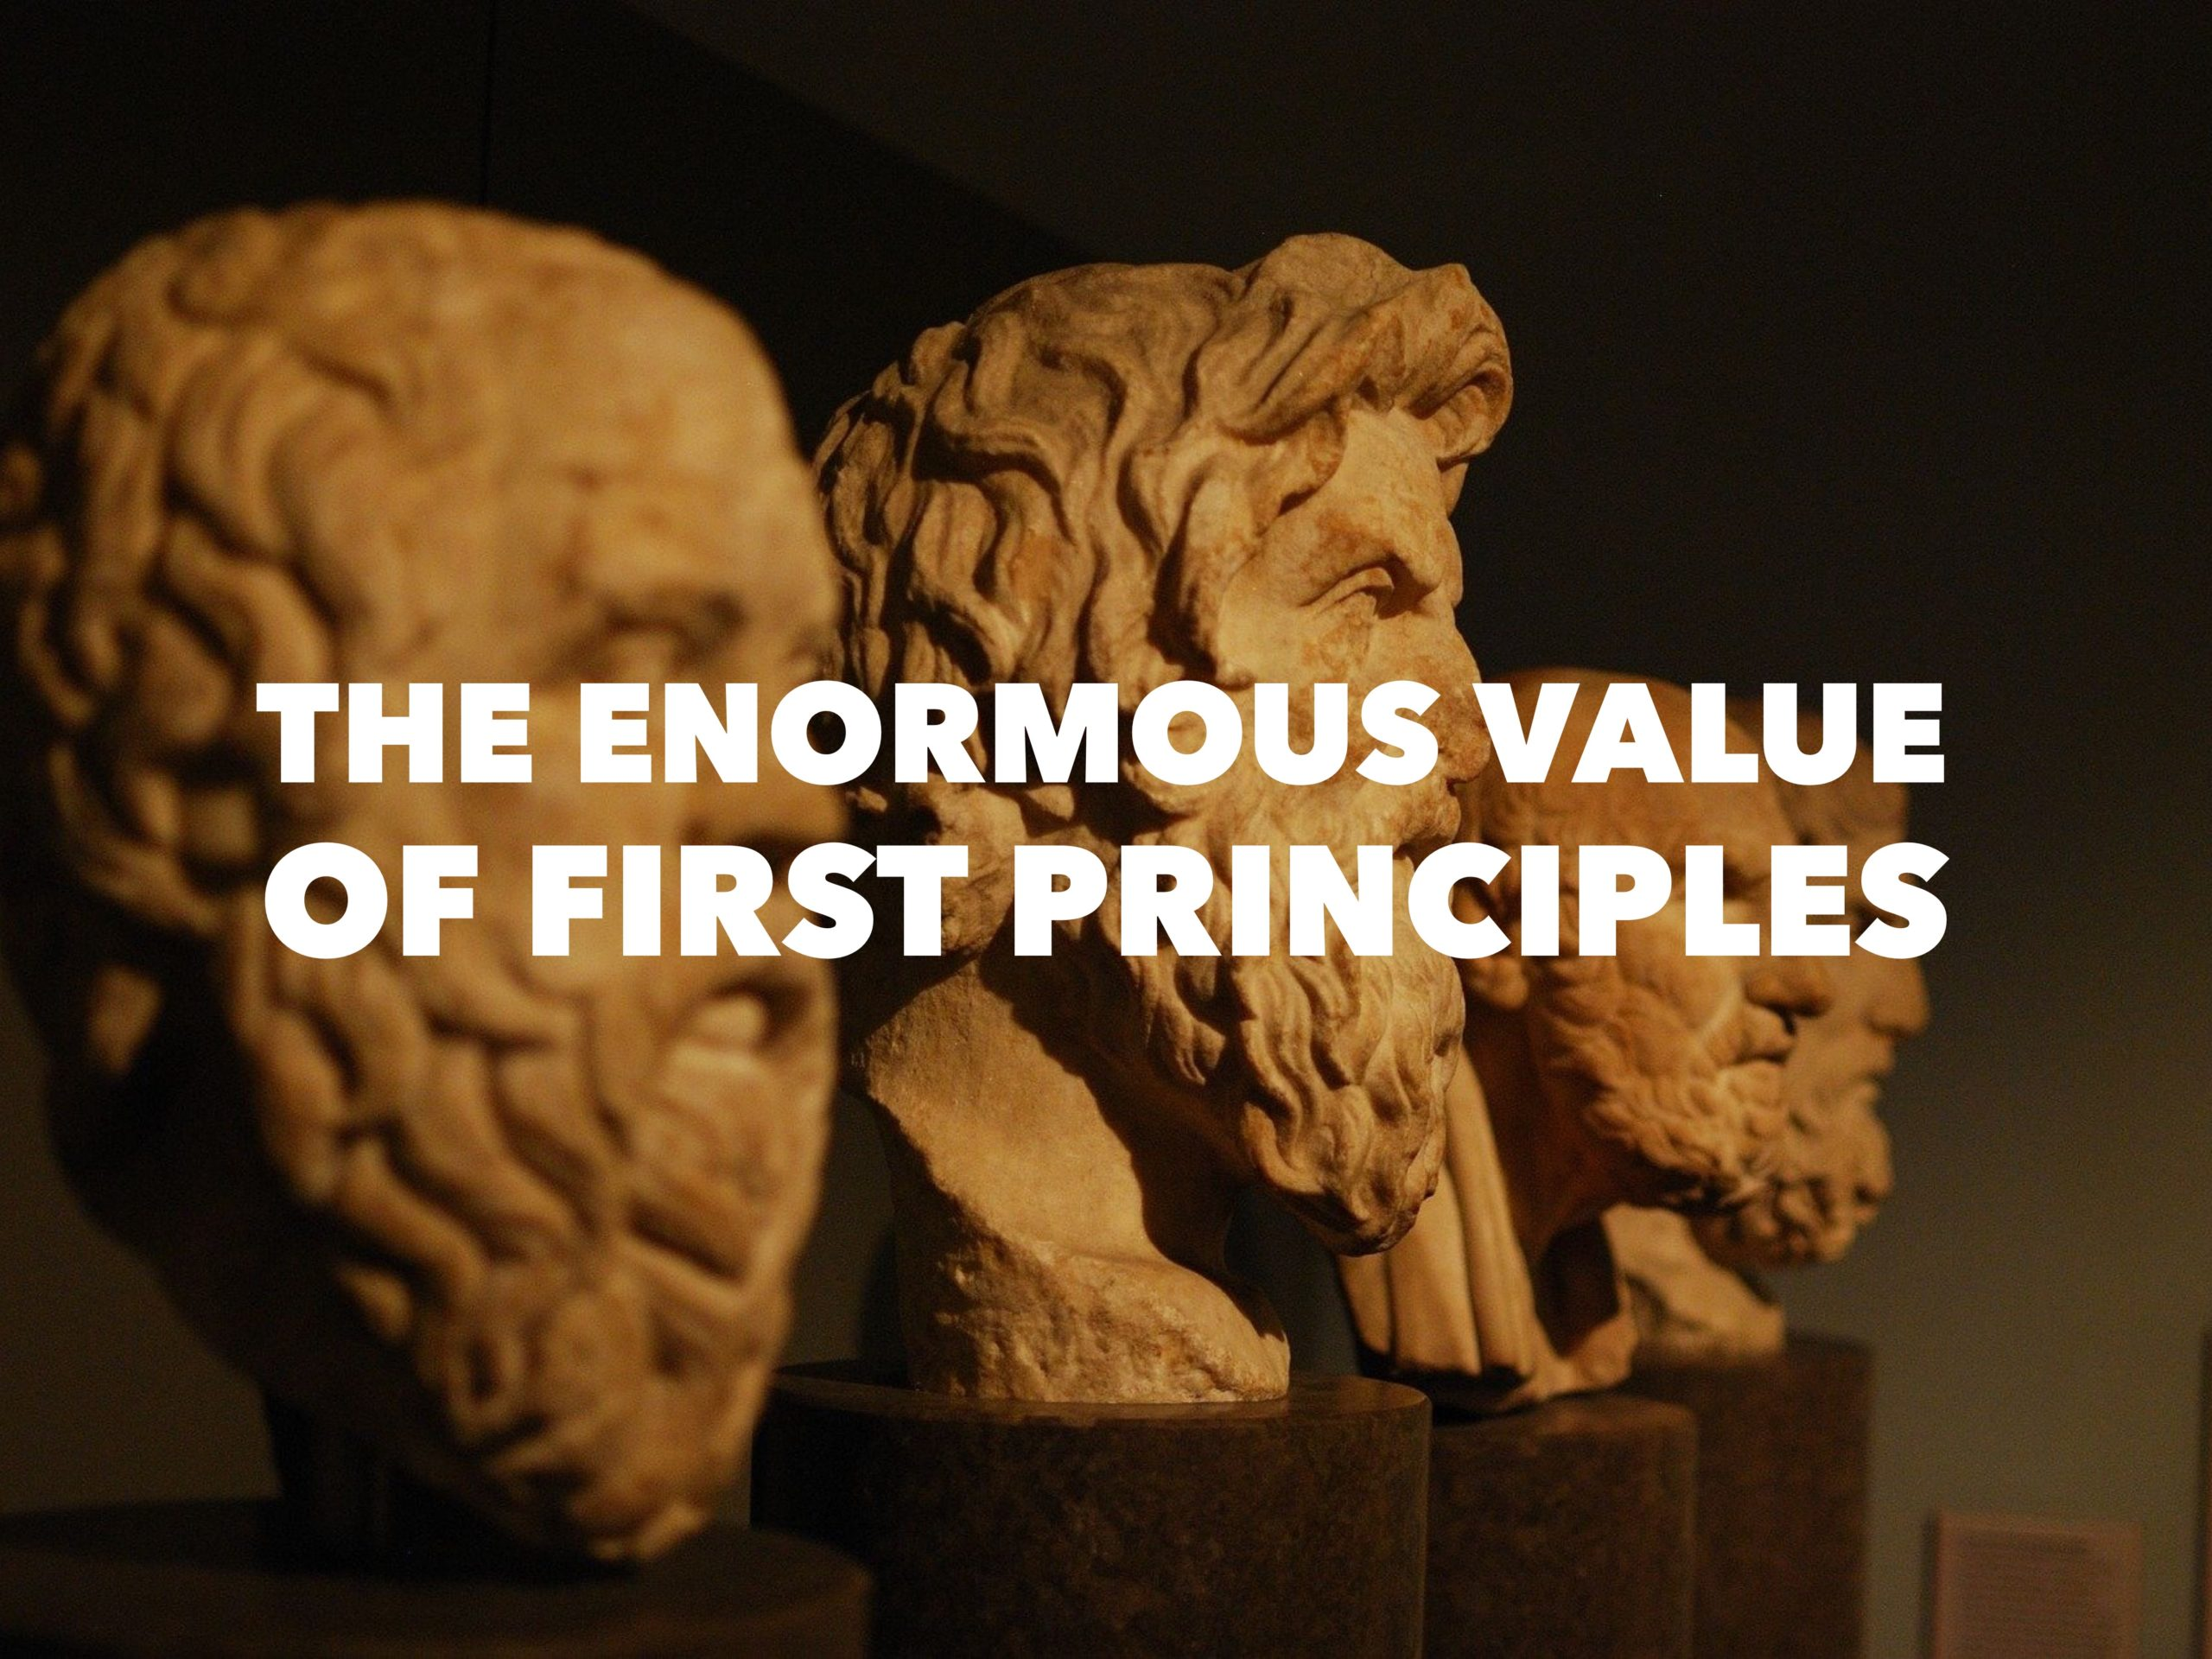 The Enormous Value of First Principles